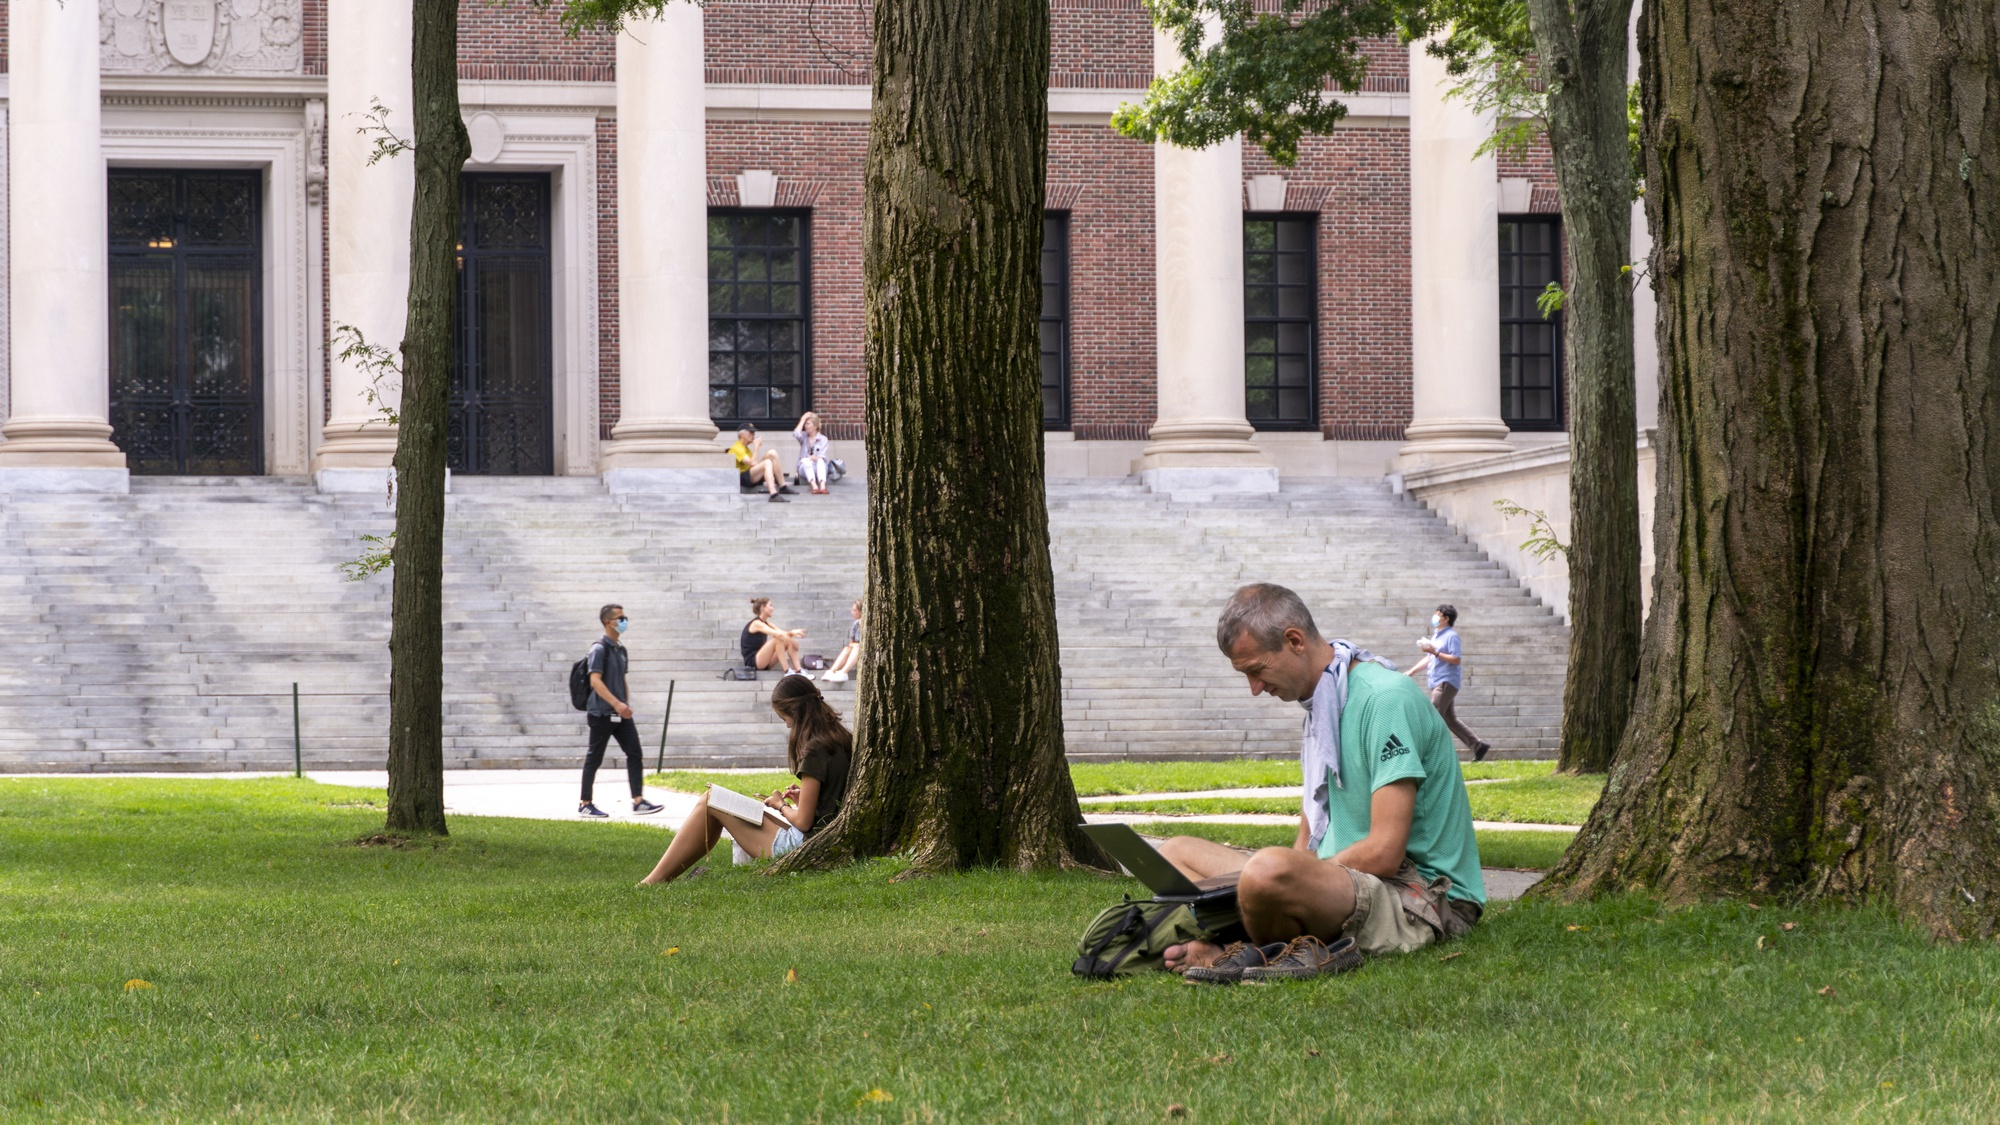 Tourists enjoy a socially-distant afternoon in the Yard.